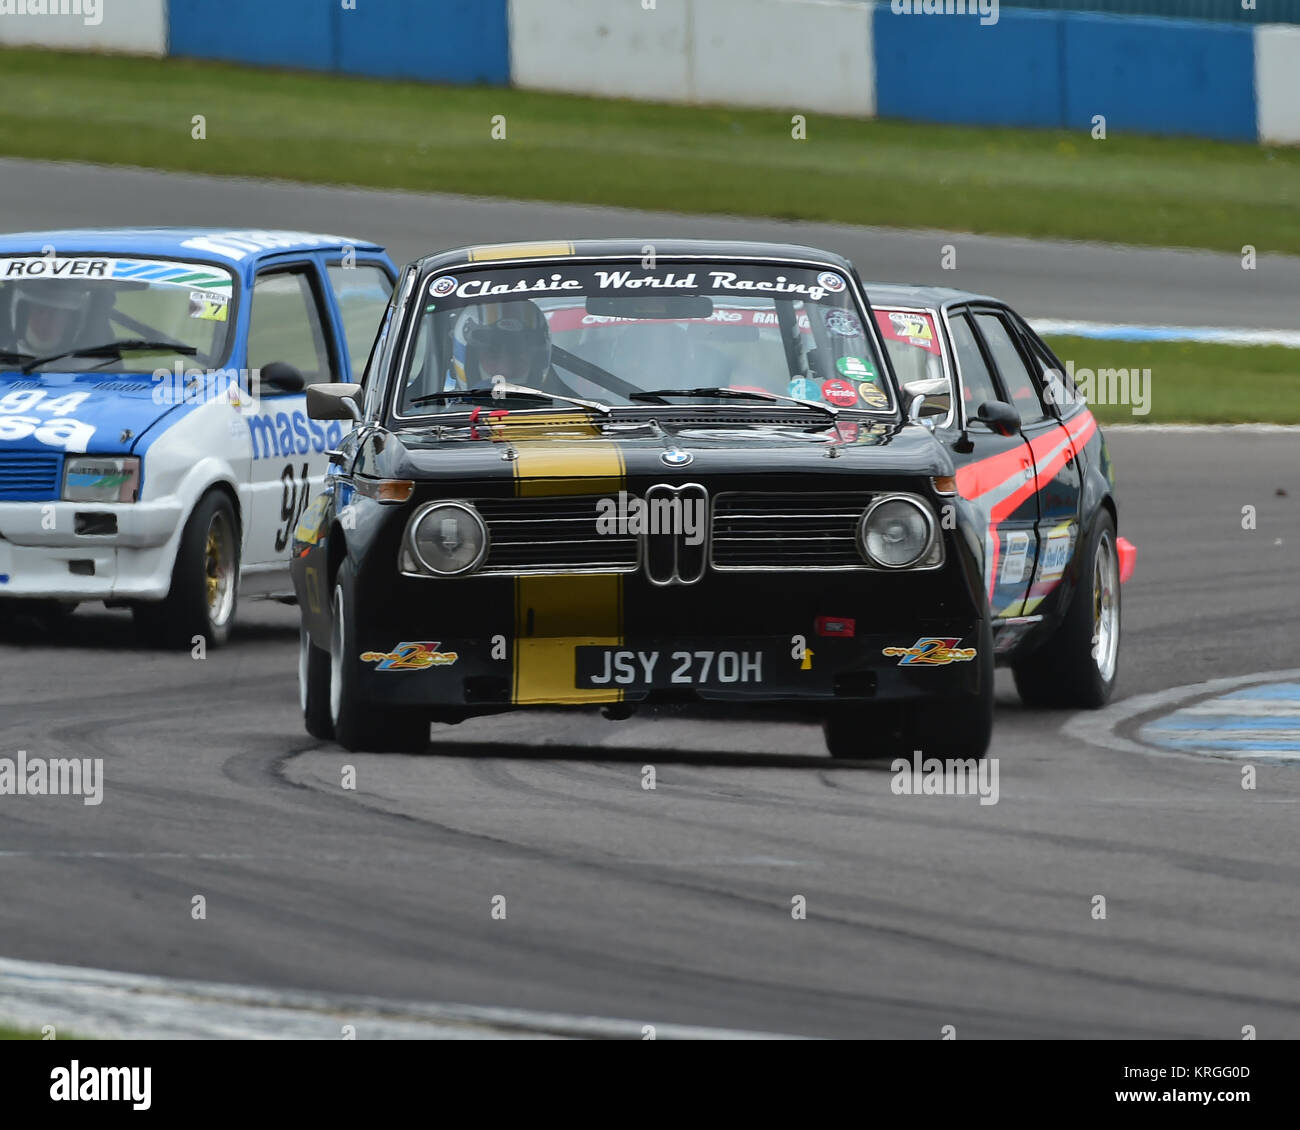 Bmw 2002 Tii Race Car >> Bmw 2002 Ti Stock Photos & Bmw 2002 Ti Stock Images - Alamy